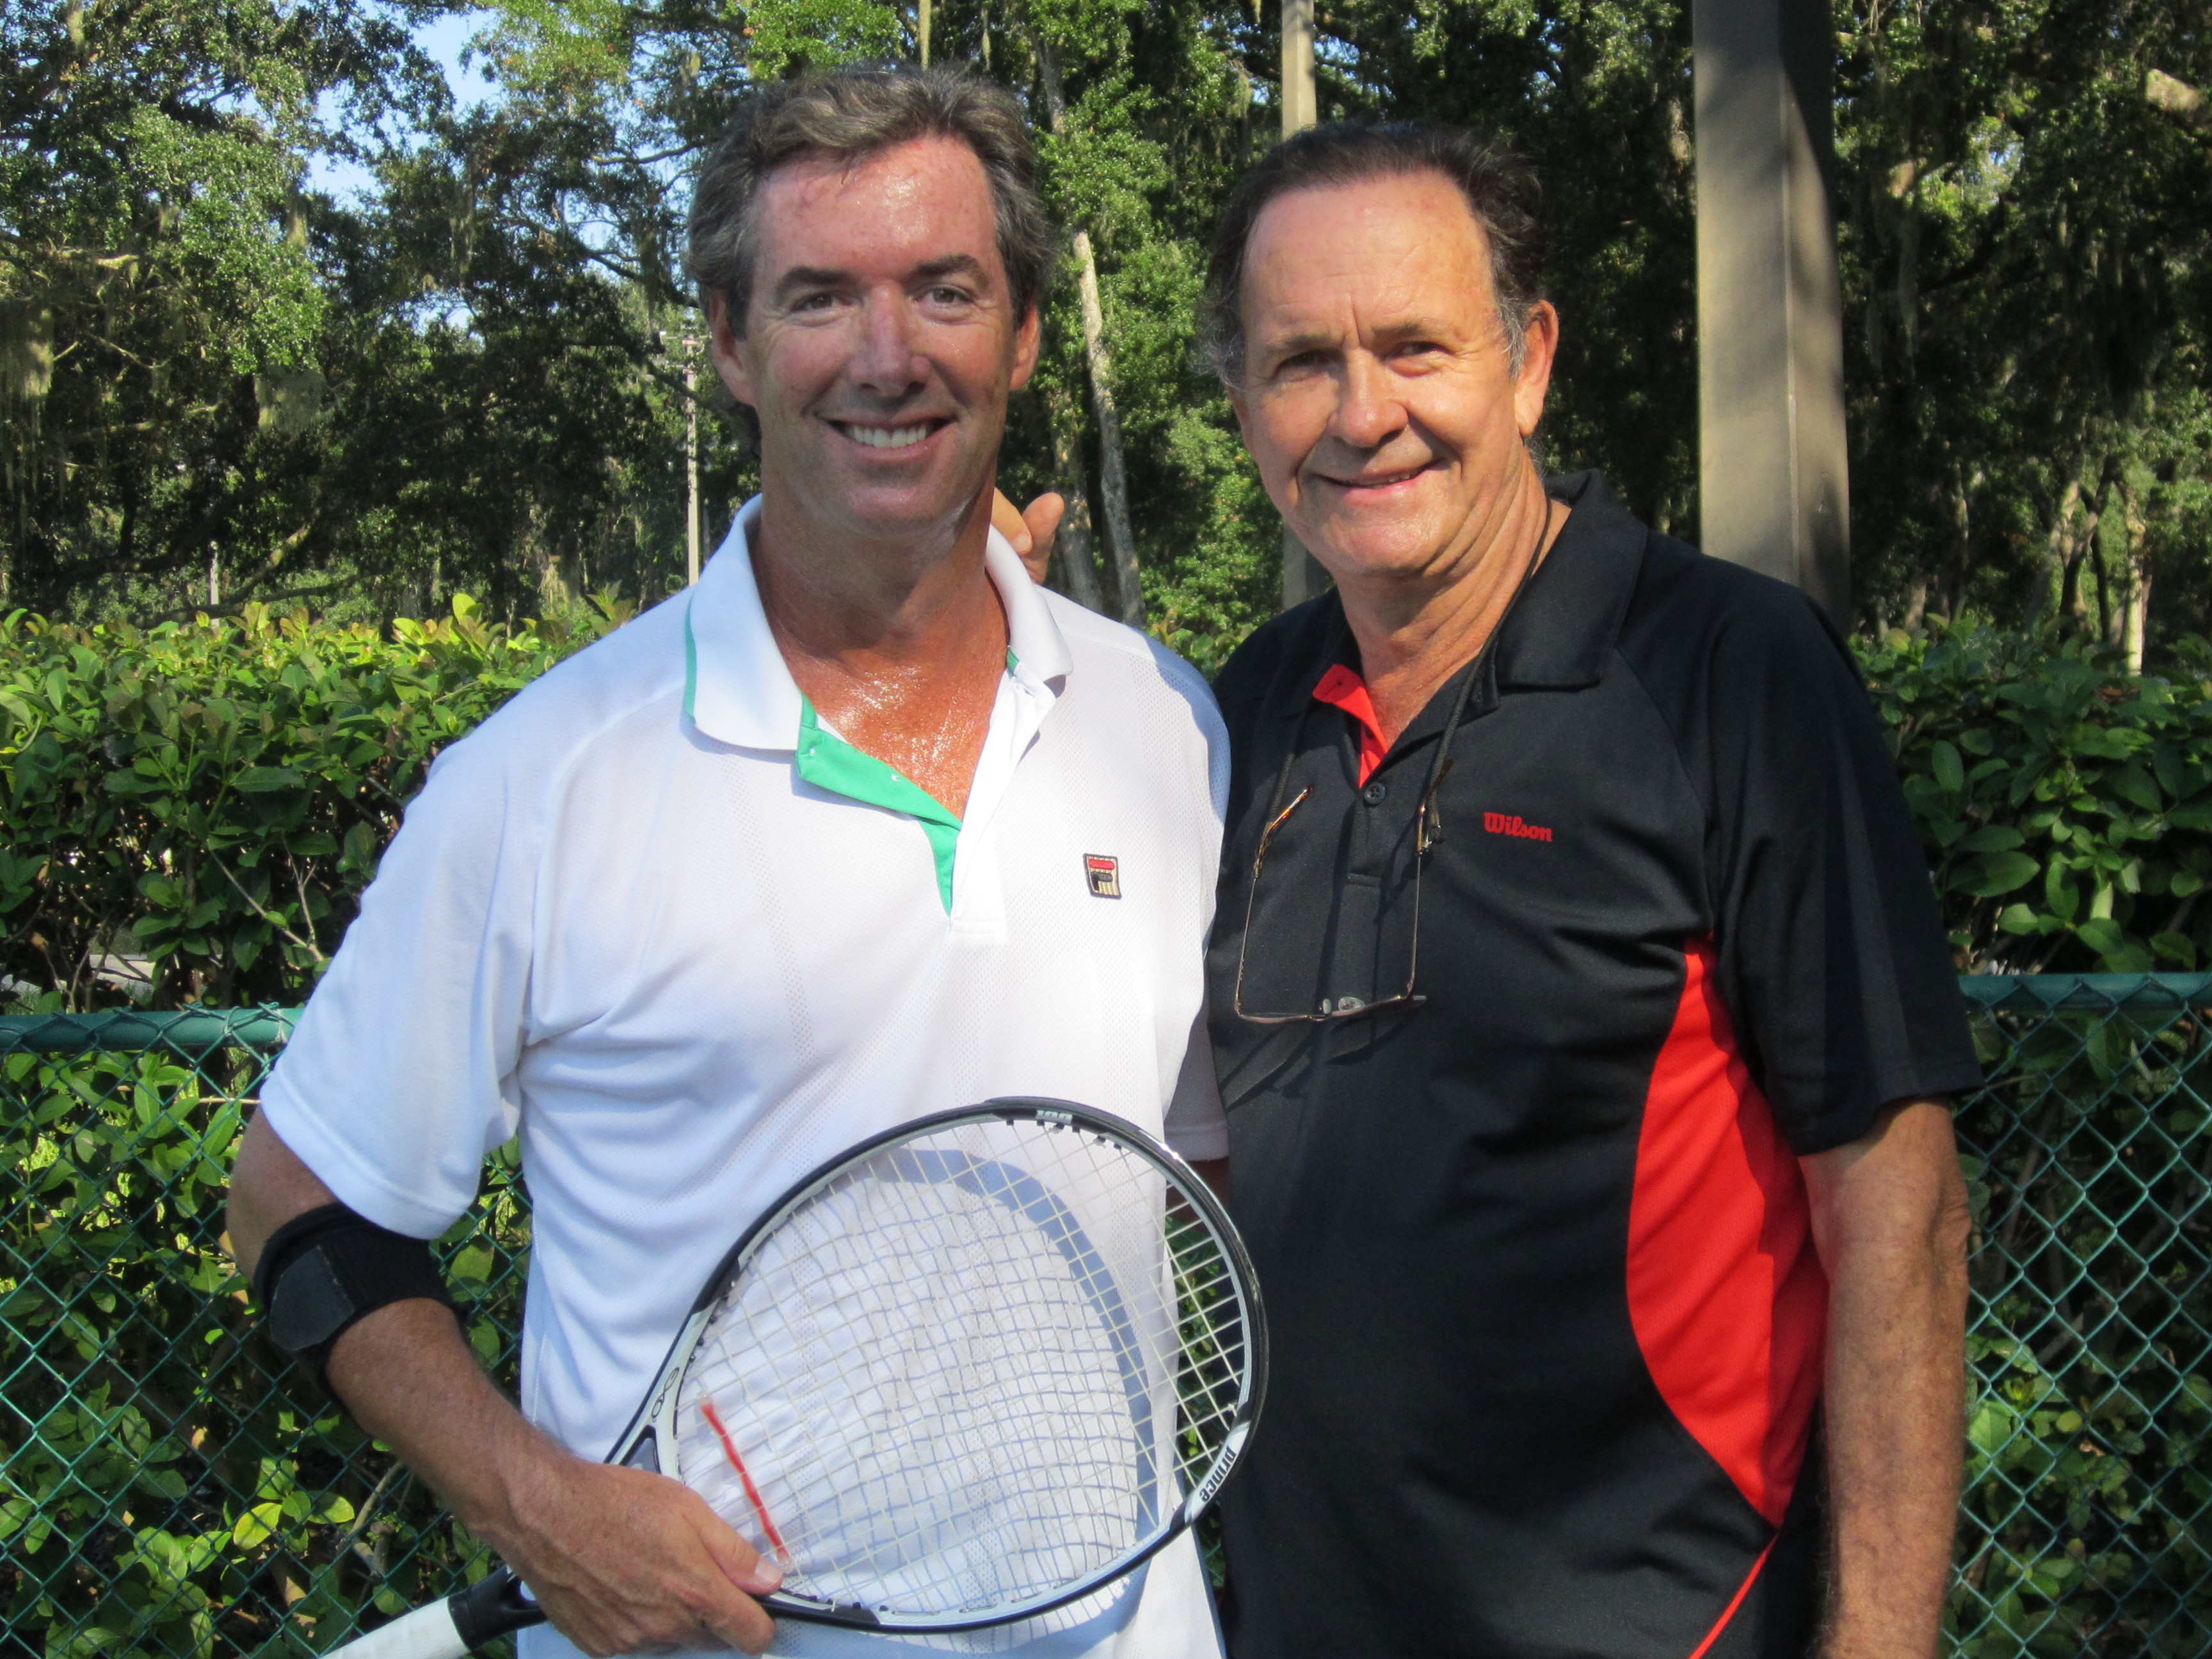 Ray Collins and Tennis Commentator Cliff Drysdale on Amelia Island.